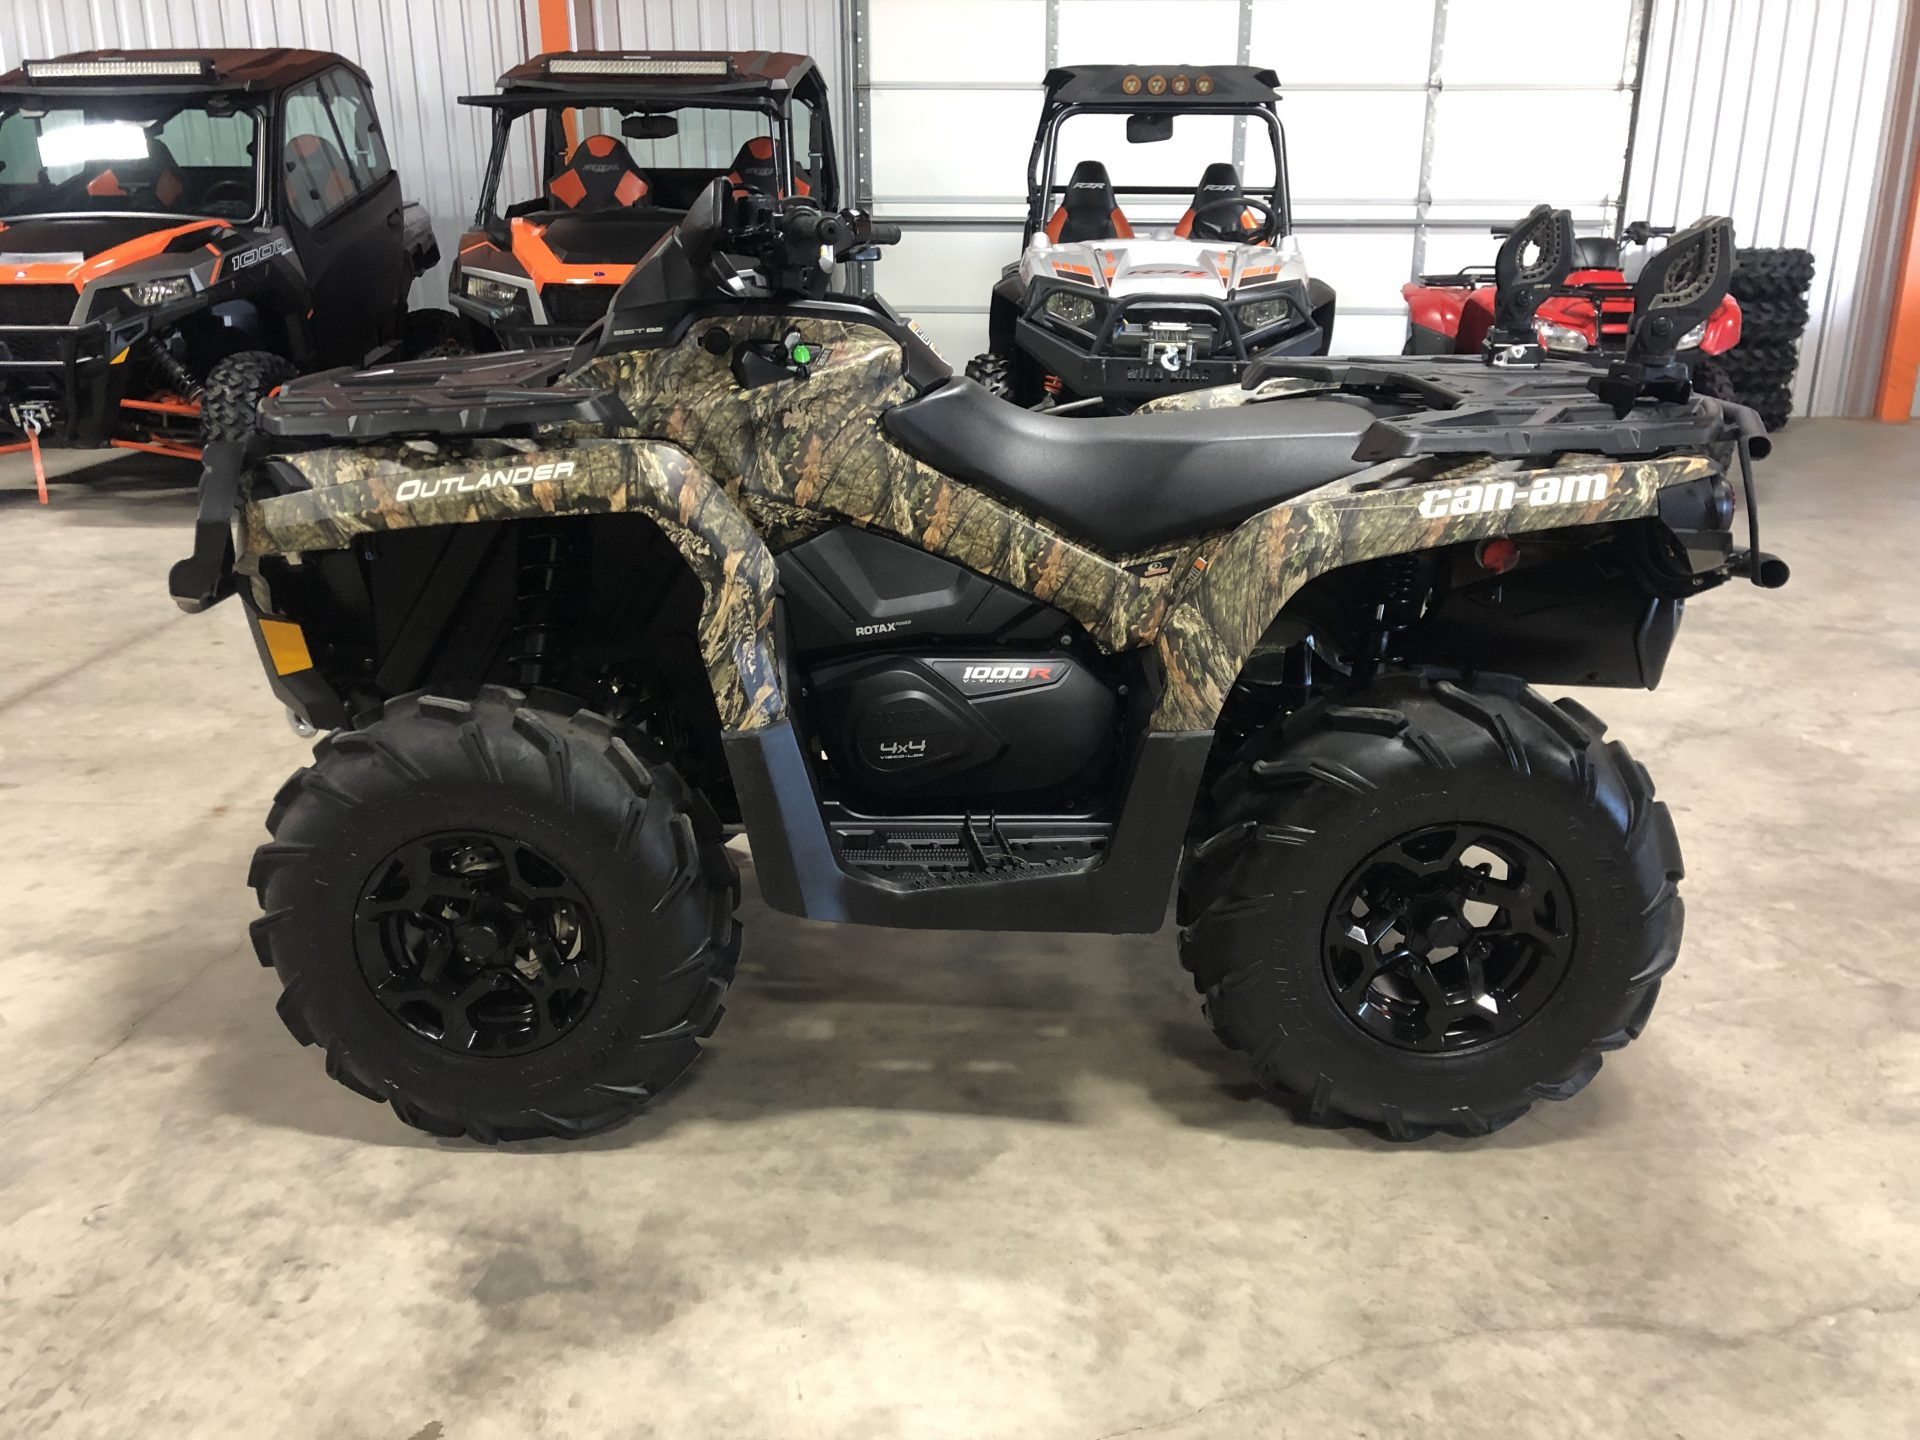 2017 Can-Am Outlander 1000R Image